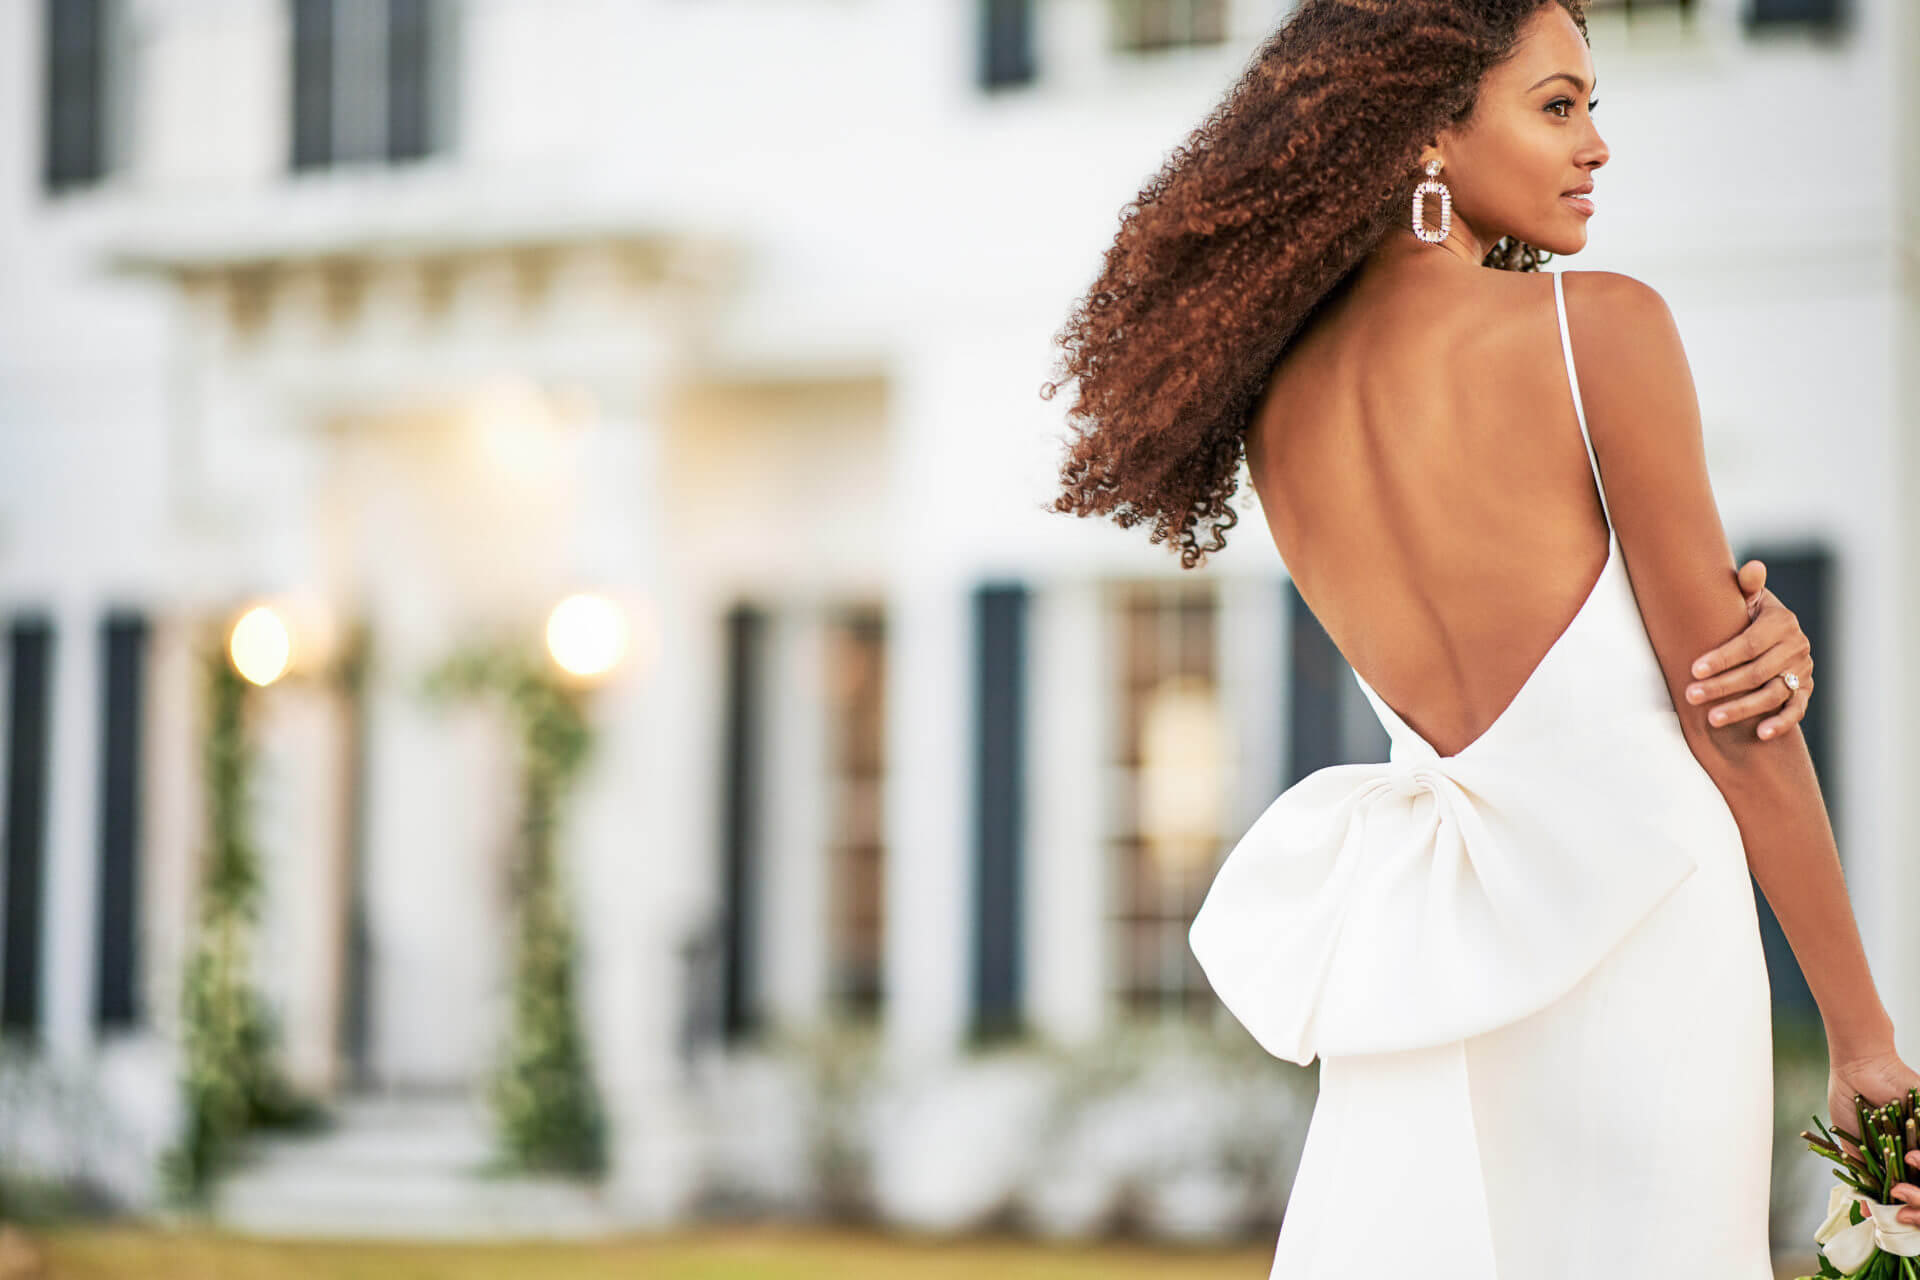 8 Tips For Wearing a Backless Wedding Dress